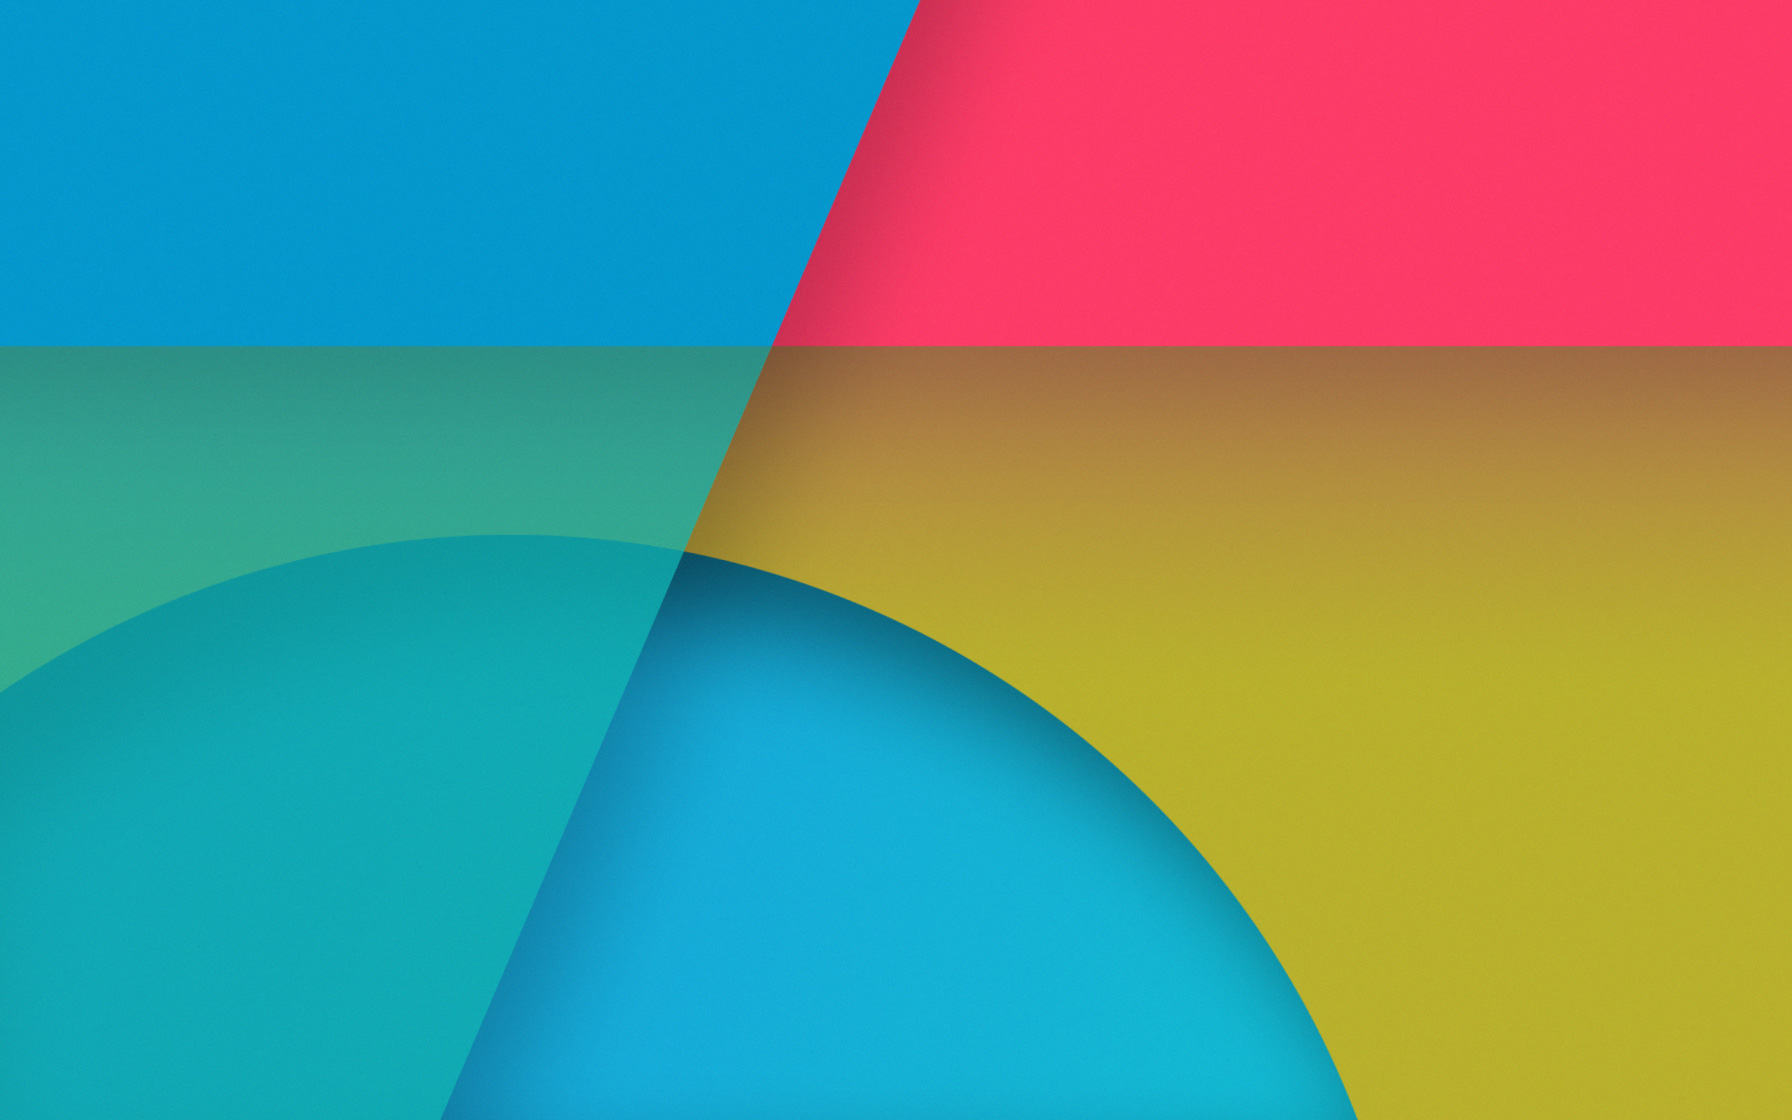 Latest Android 4.4 Kitkat Wallpapers and Features - Nexus ...